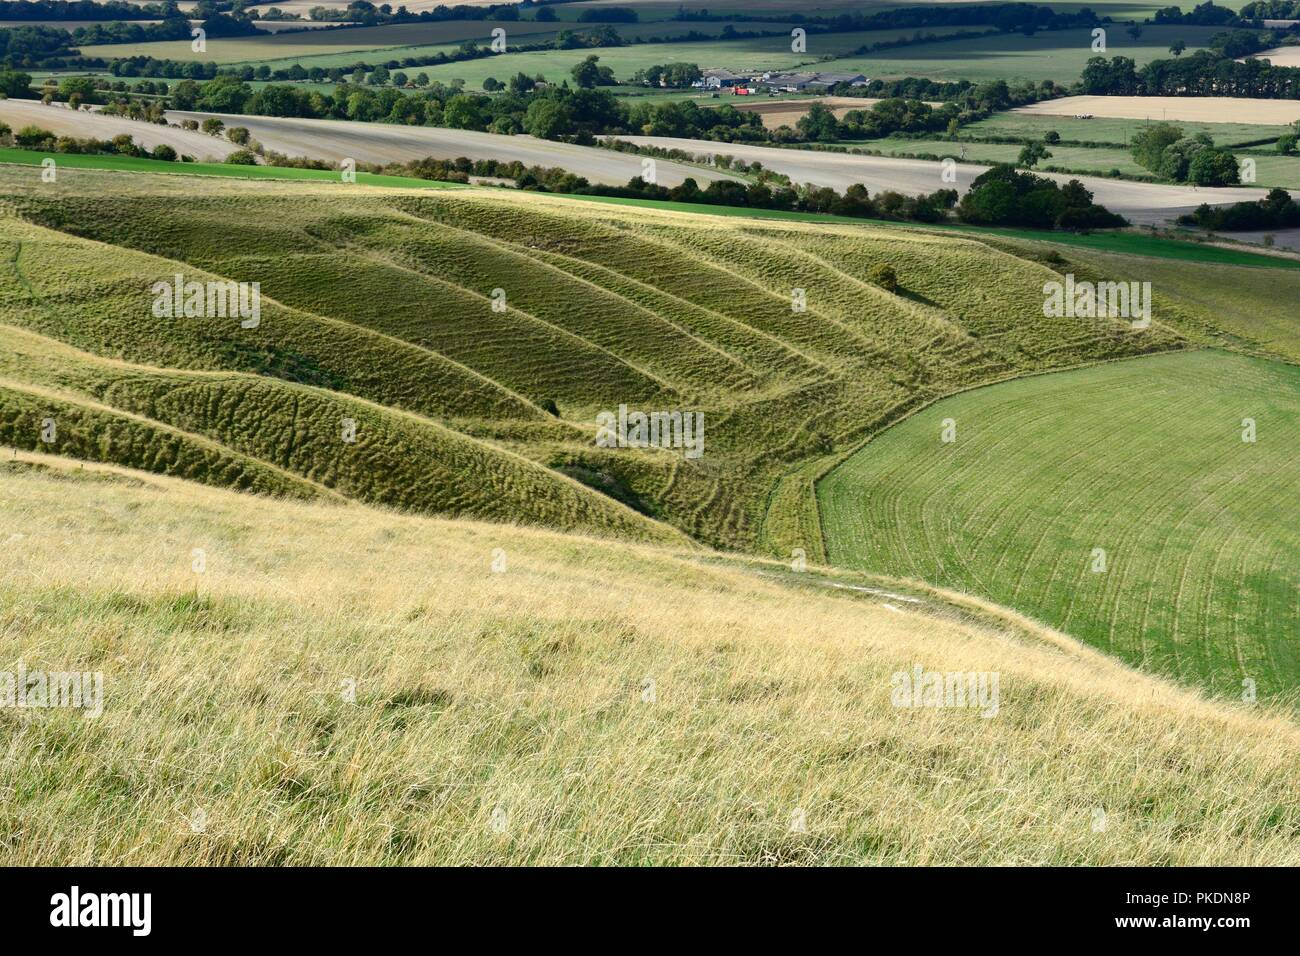 Giants Steps Uffington steep rippled sides left from the retreating permafrost during the last Ice age Oxfordshire England - Stock Image